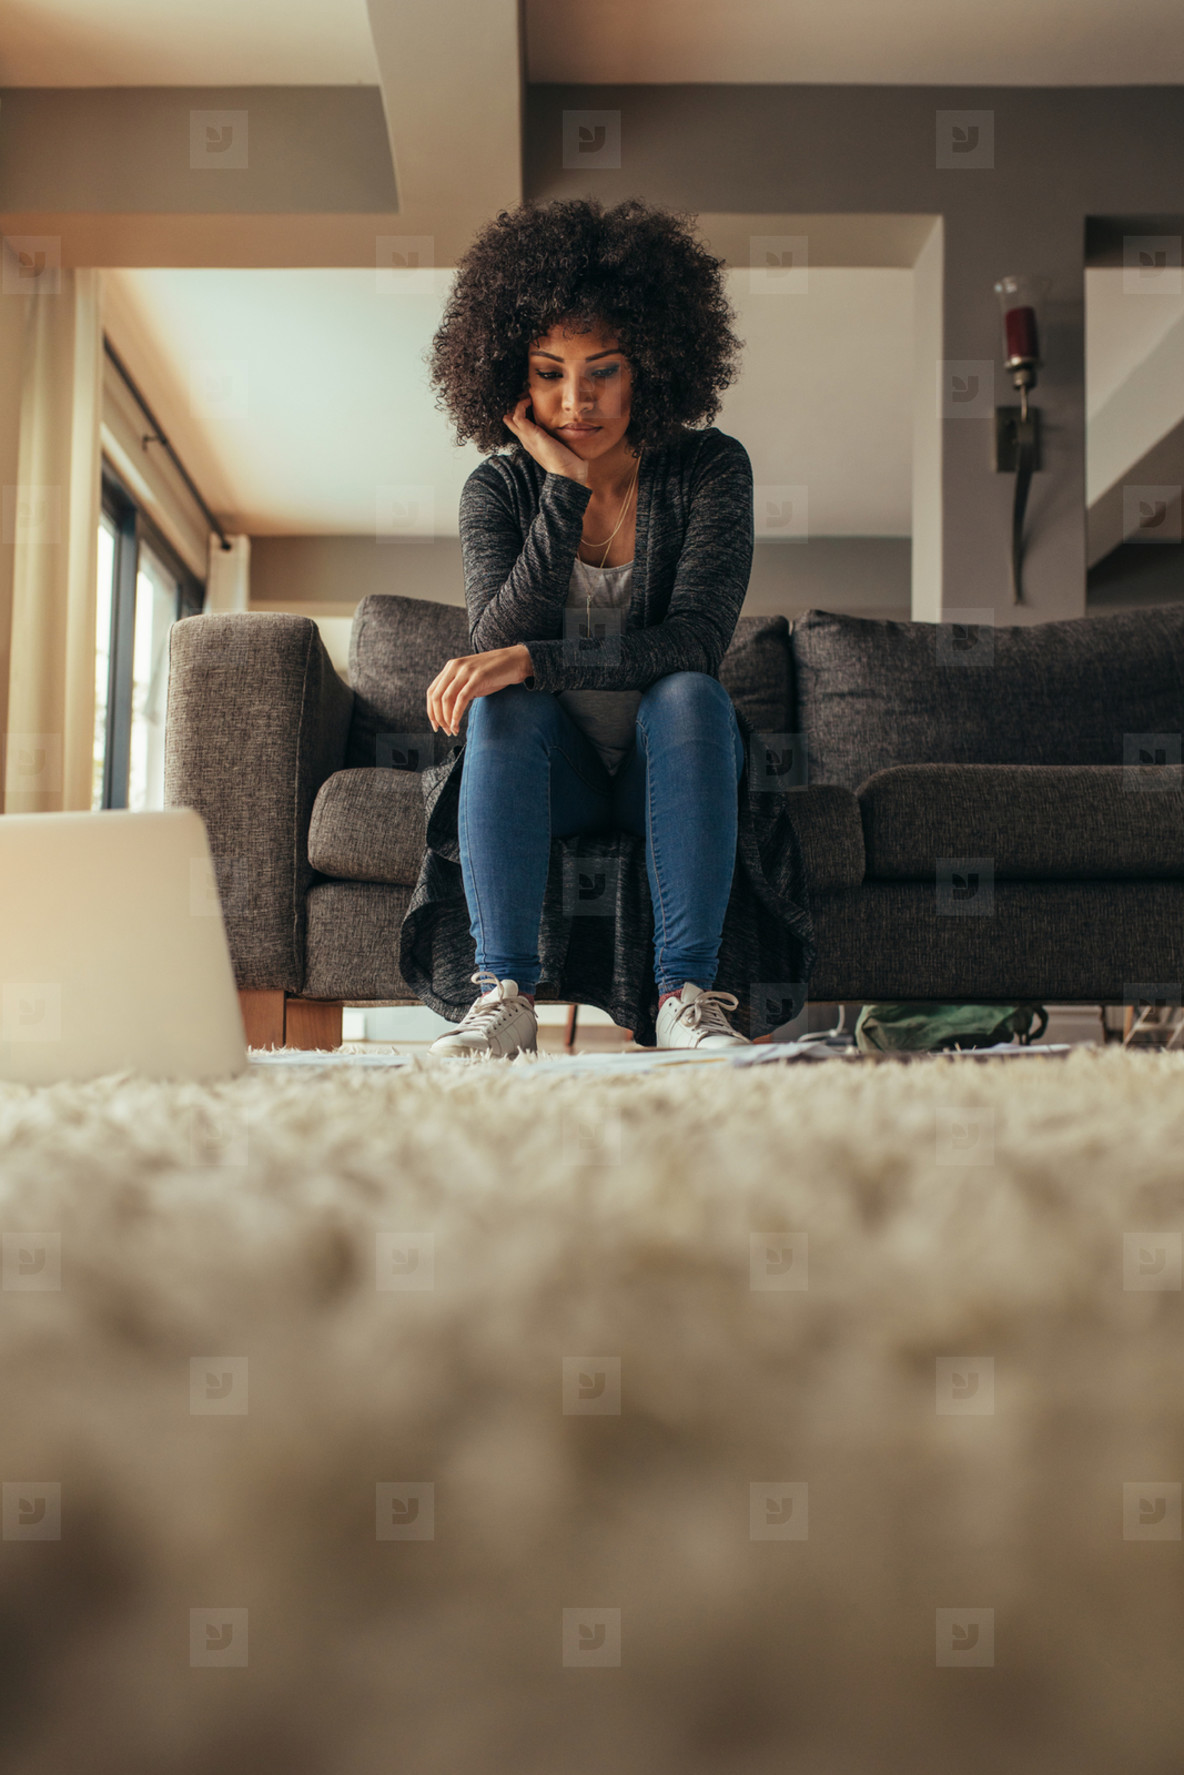 Woman looking at documents on floor